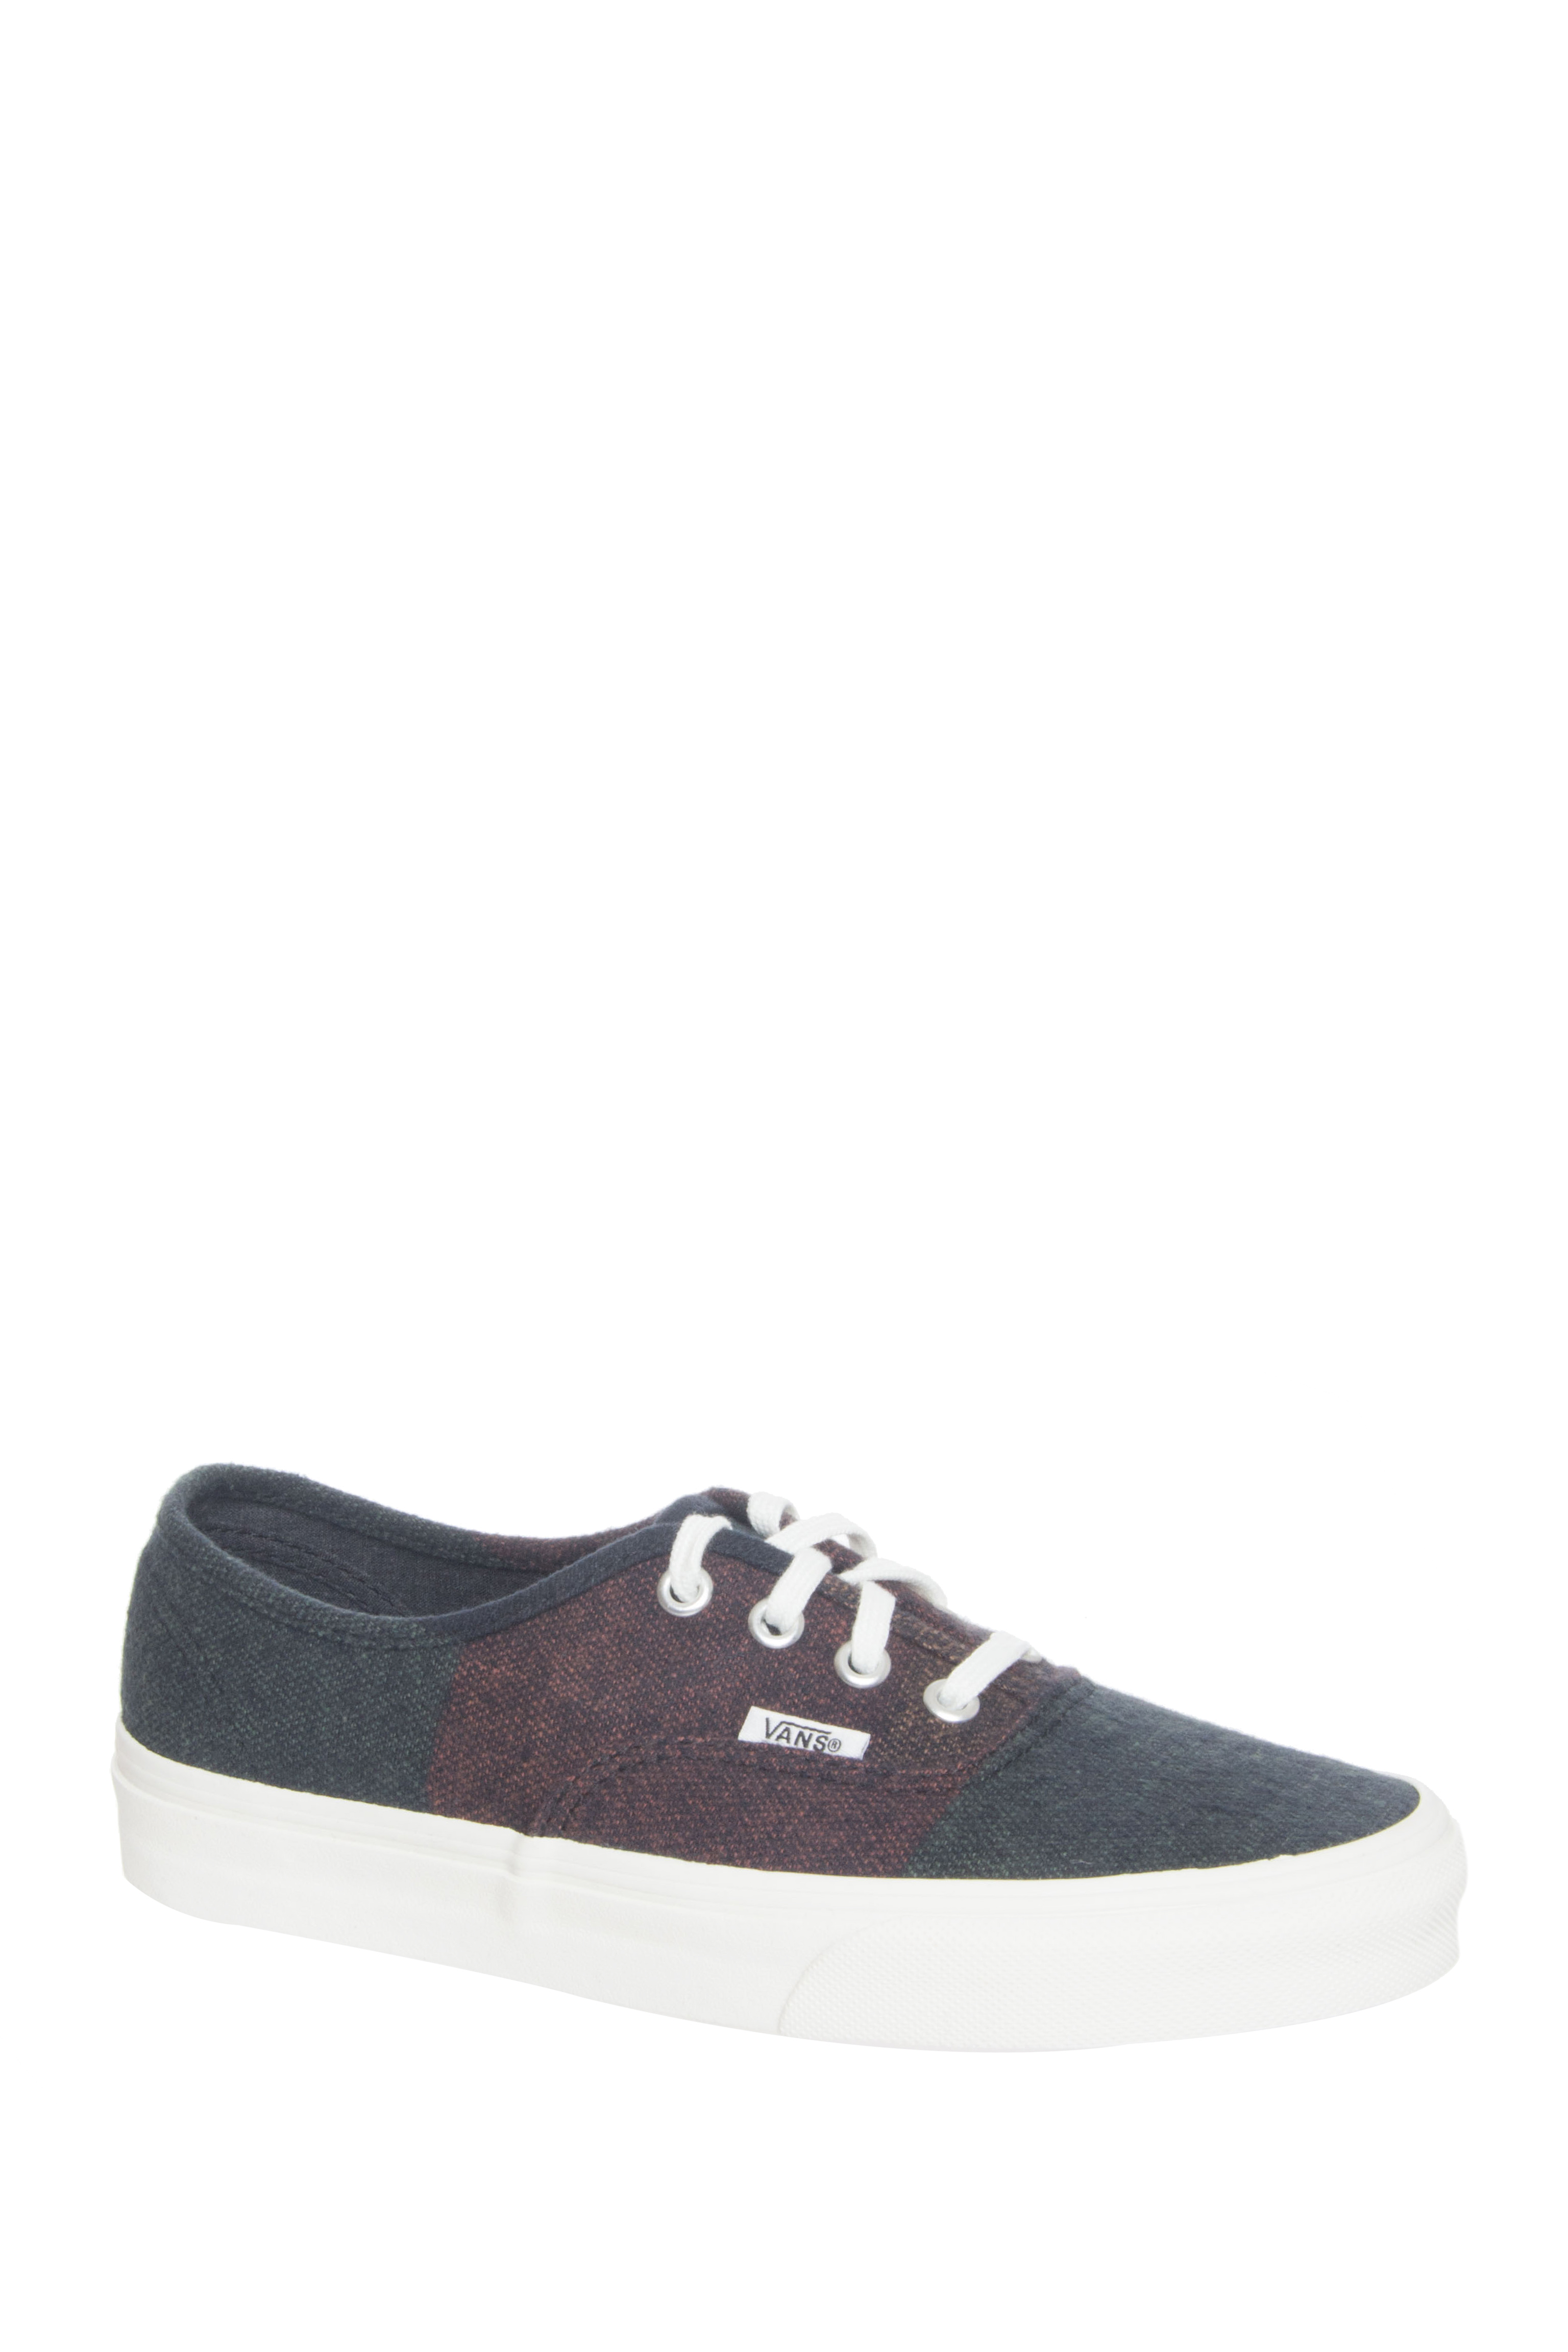 Vans Unisex Wool Stripes Low Top Sneakers - Multi